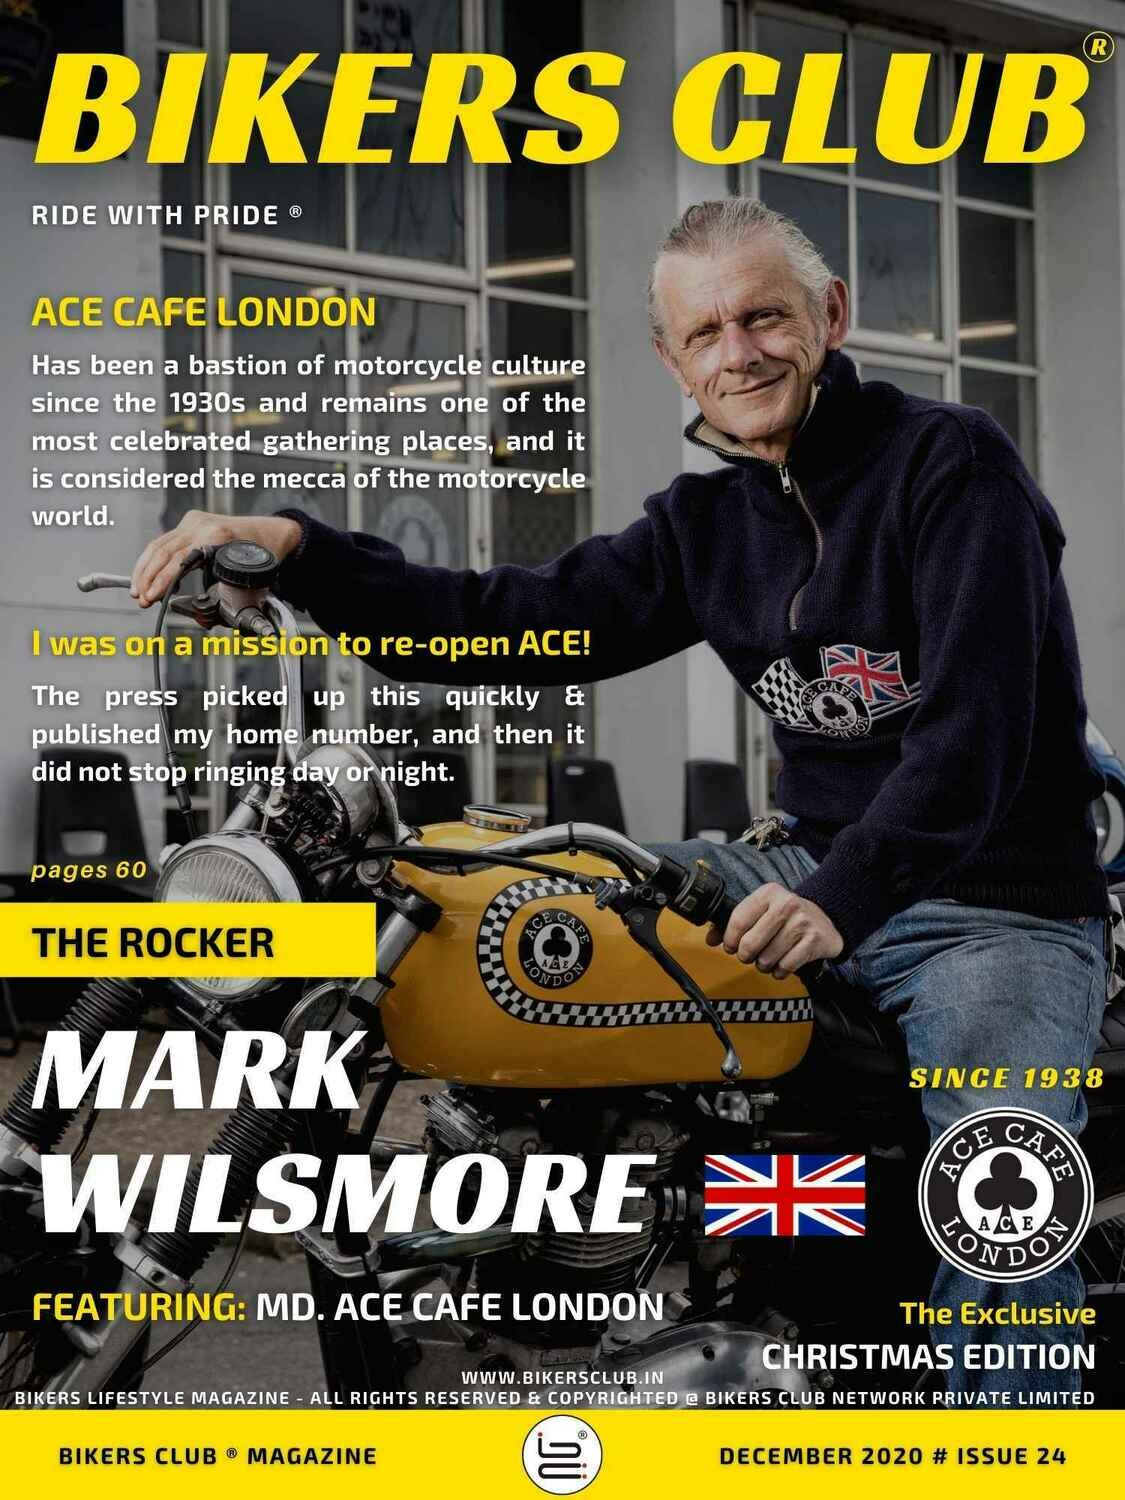 Bikers Club-e-magazine-December-2020-Mark Wilsmore-Ace Cafe London